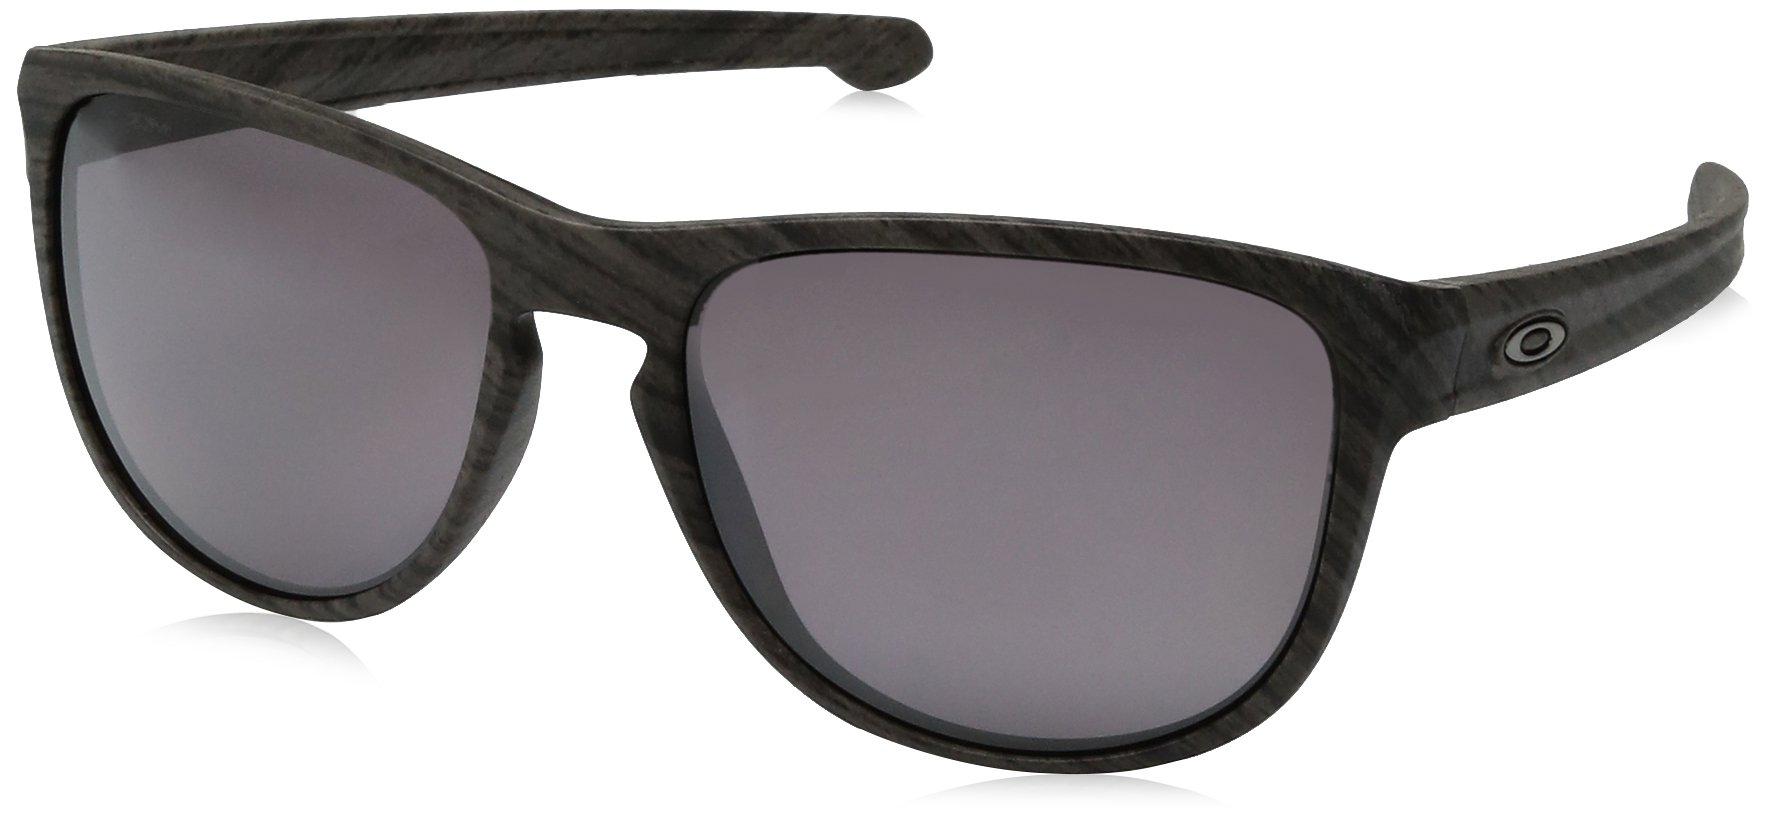 Oakley Men's Sliver R Non-Polarized Iridium Sunglasses, Matte Black with Jade Iridium, 57 mm